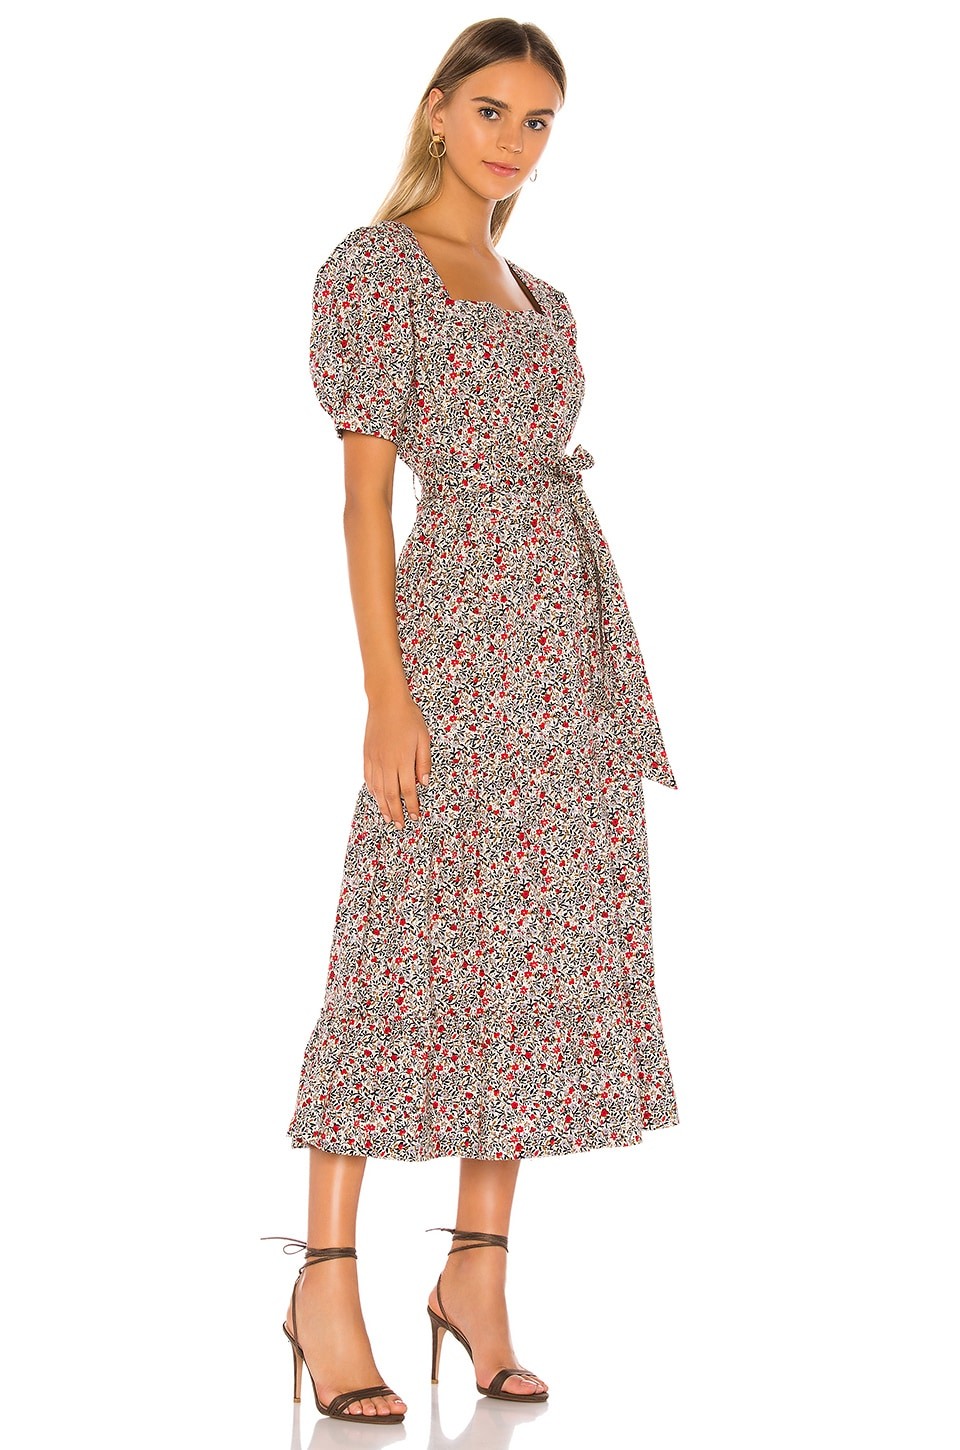 Heartlands Maxi Dress, view 2, click to view large image.